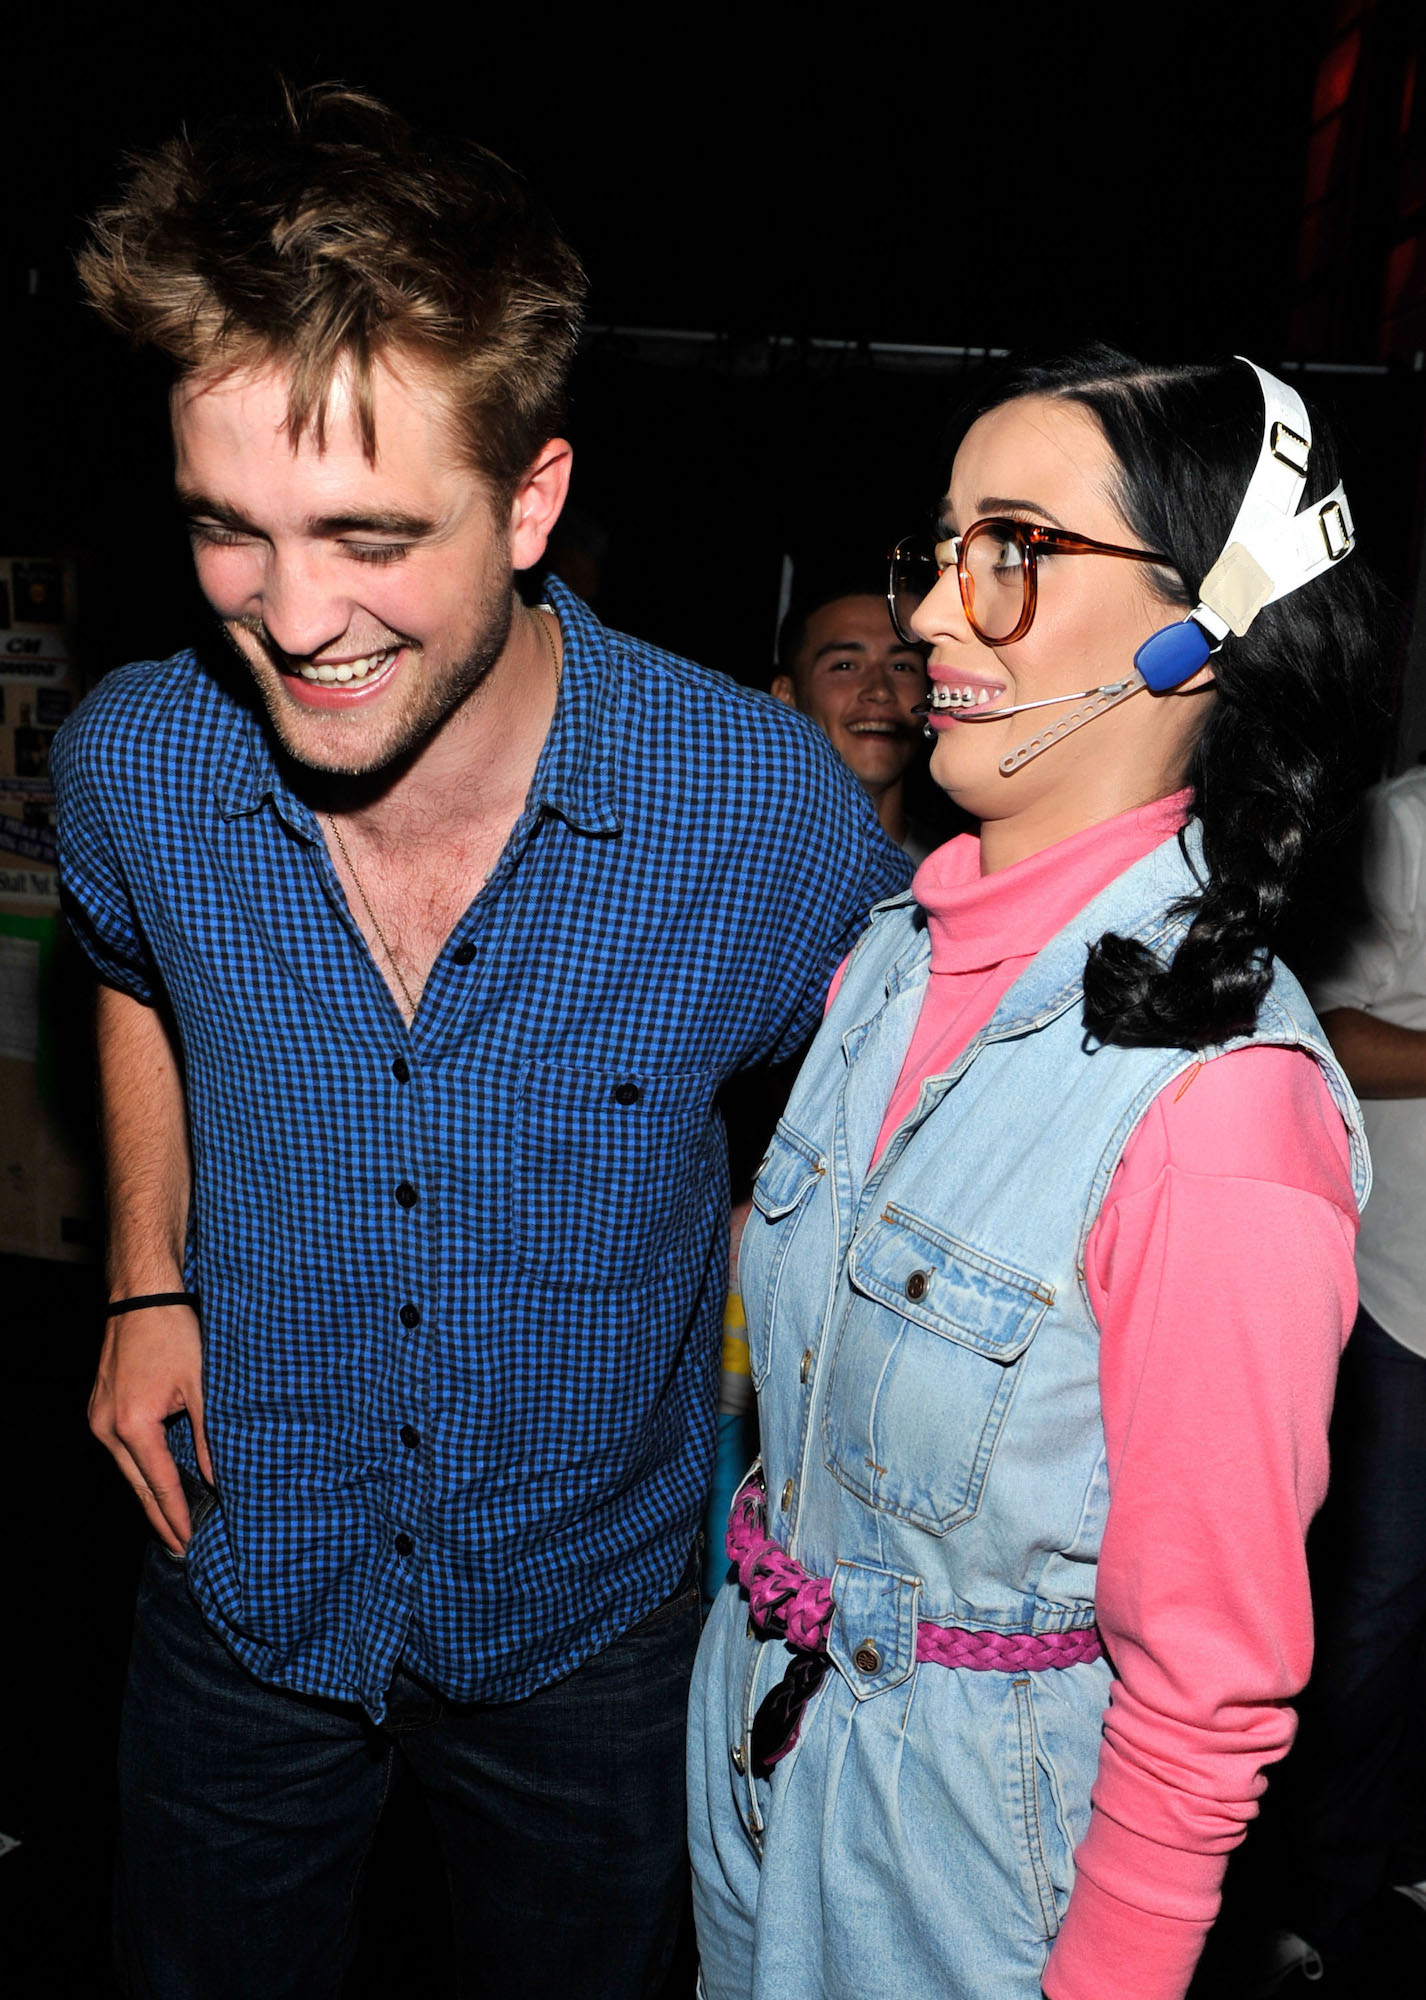 Robert Pattinson and host Katy Perry at the 2010 Teen Choice Awards on August 8, 2010.